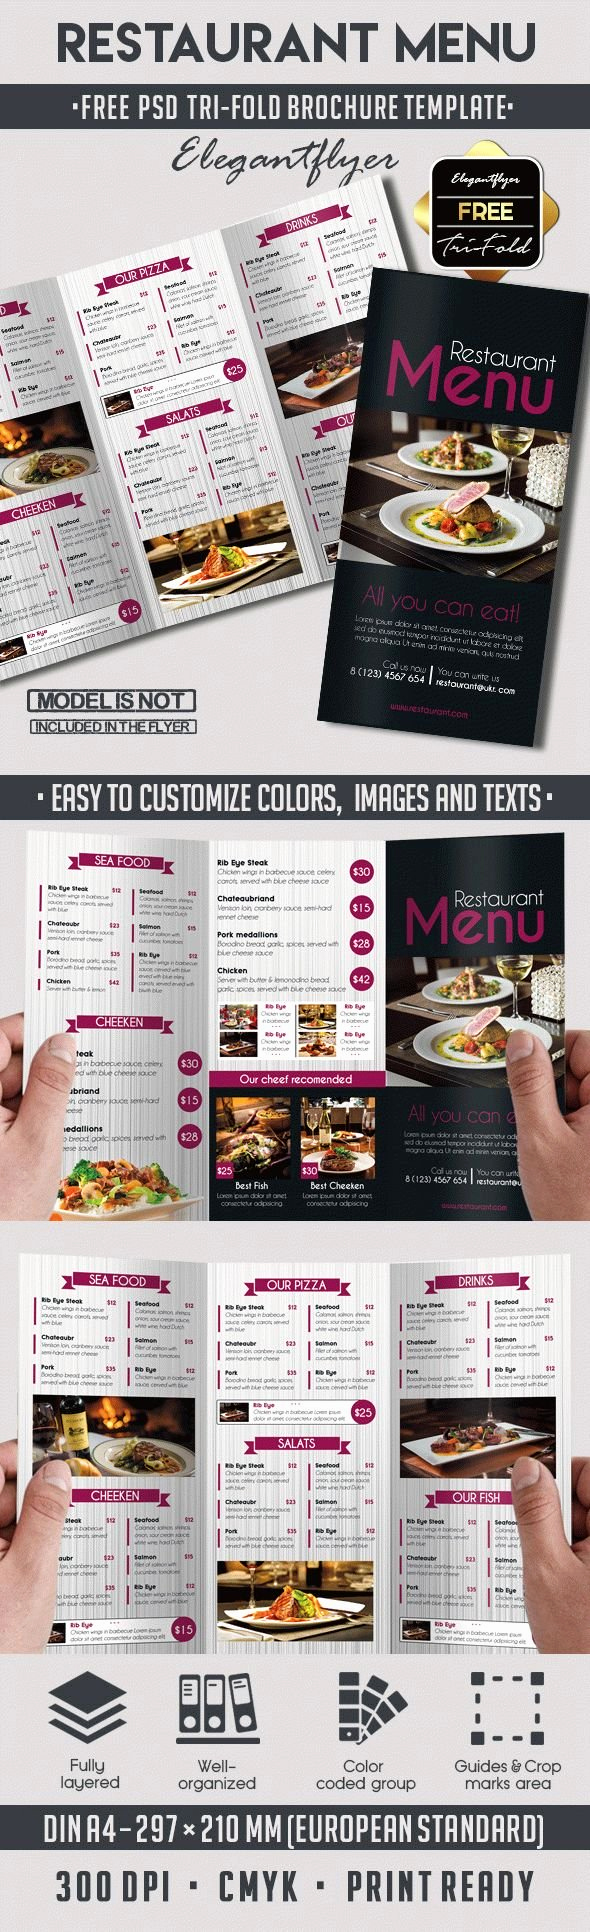 Restaurant Menu Template Psd Luxury Template Brochure for Restaurant – by Elegantflyer